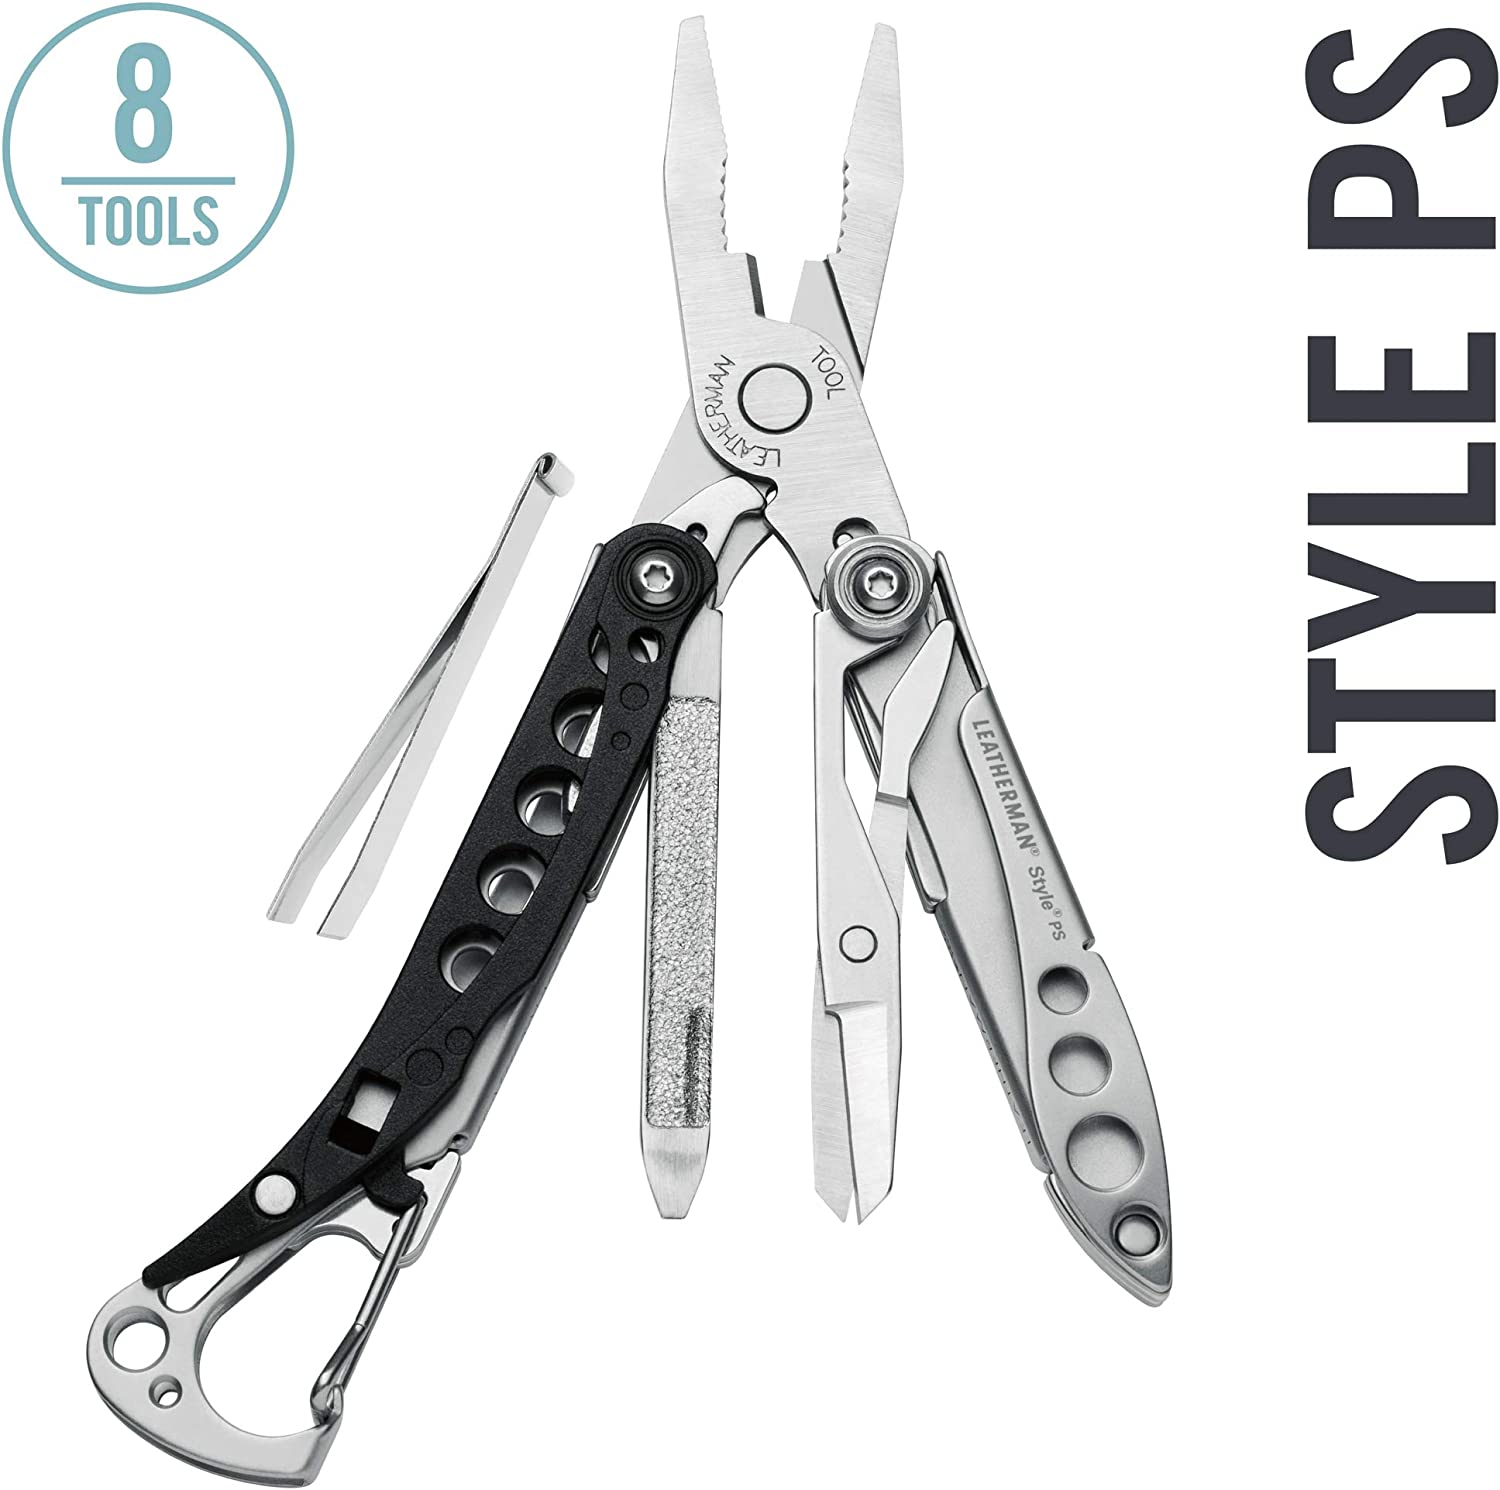 4. Leatherman Style PS 8-in-1 Keychain Multitool